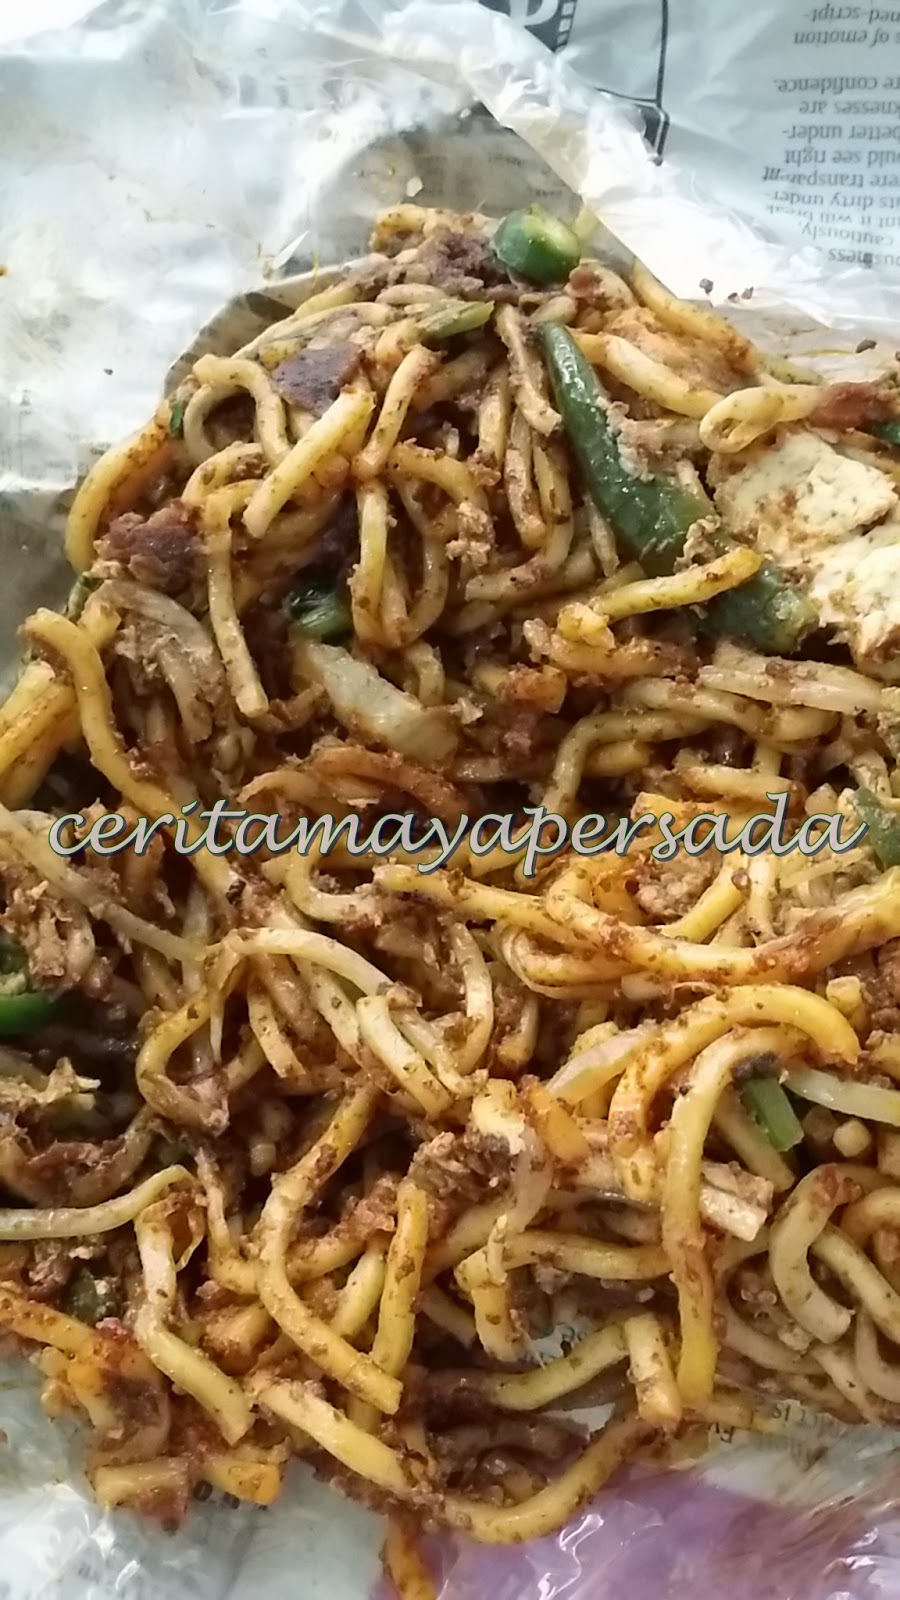 Lunch Mee Goreng Mamak